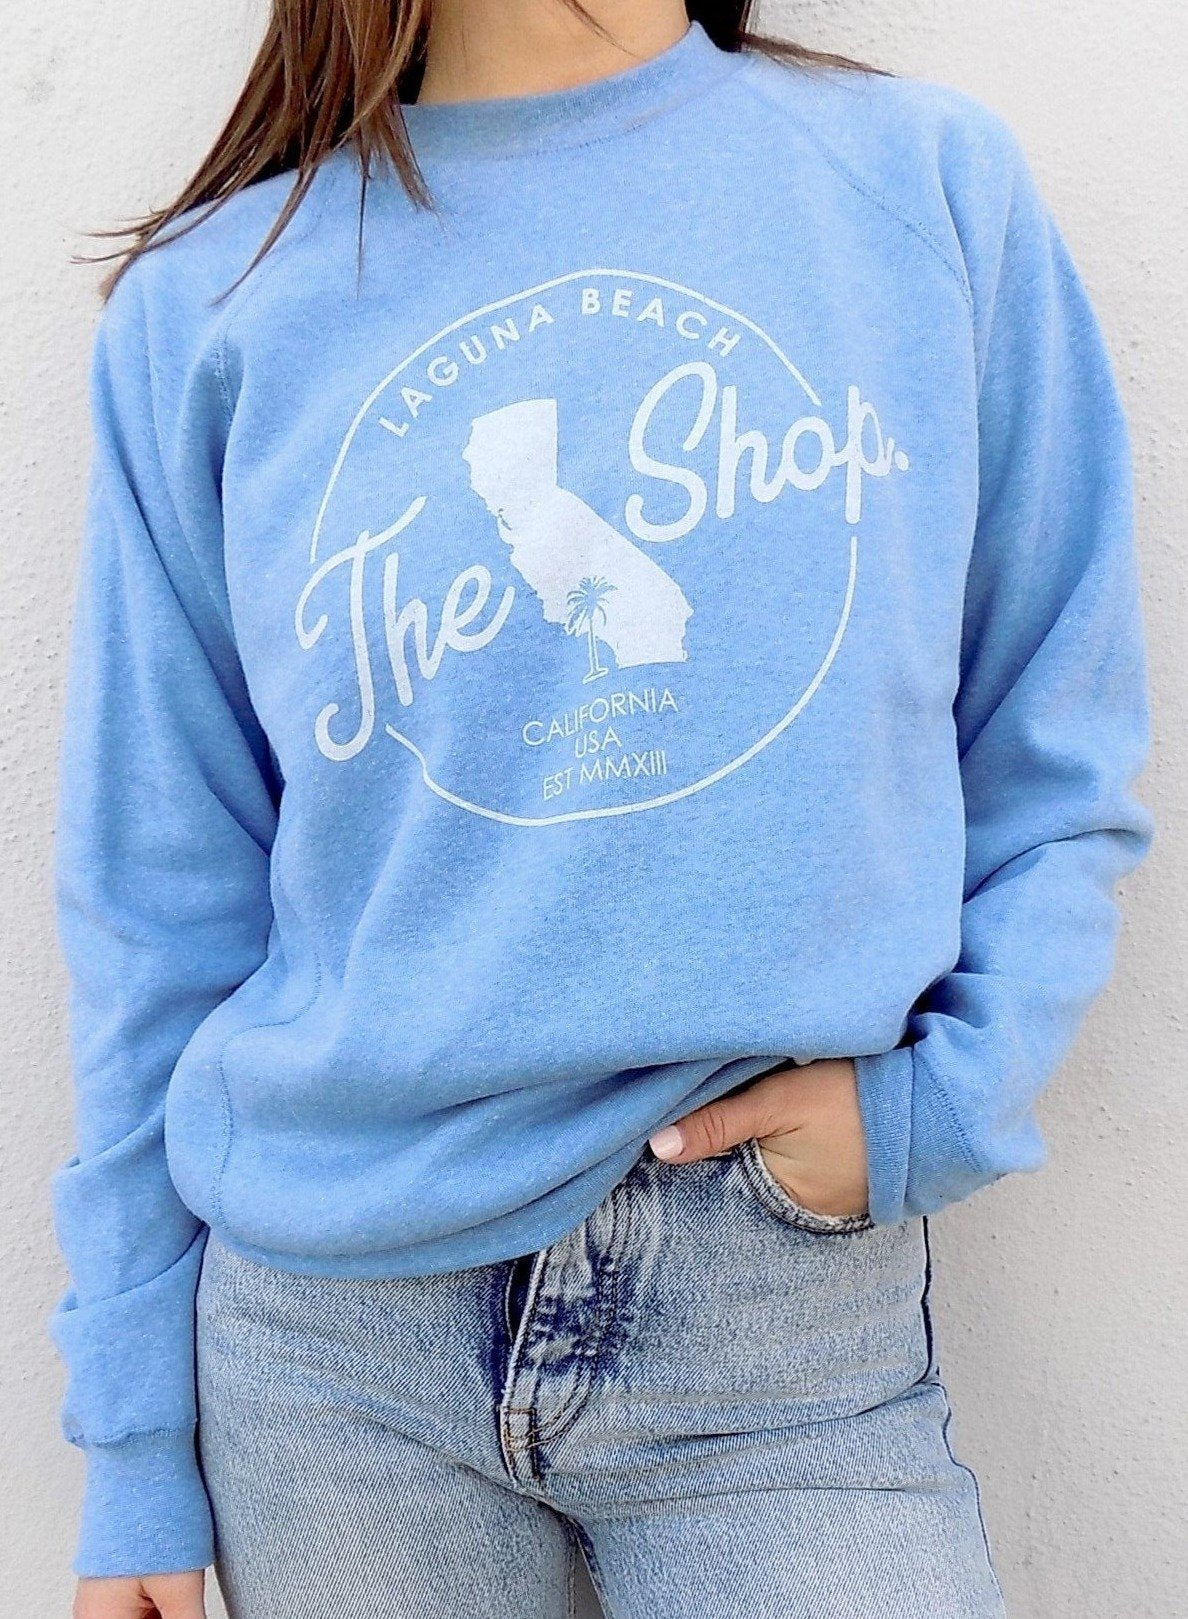 THE SHOP LAGUNA BEACH CLASSIC Cali Pullover Crew Neck Fleece Sweatshirt Pacific